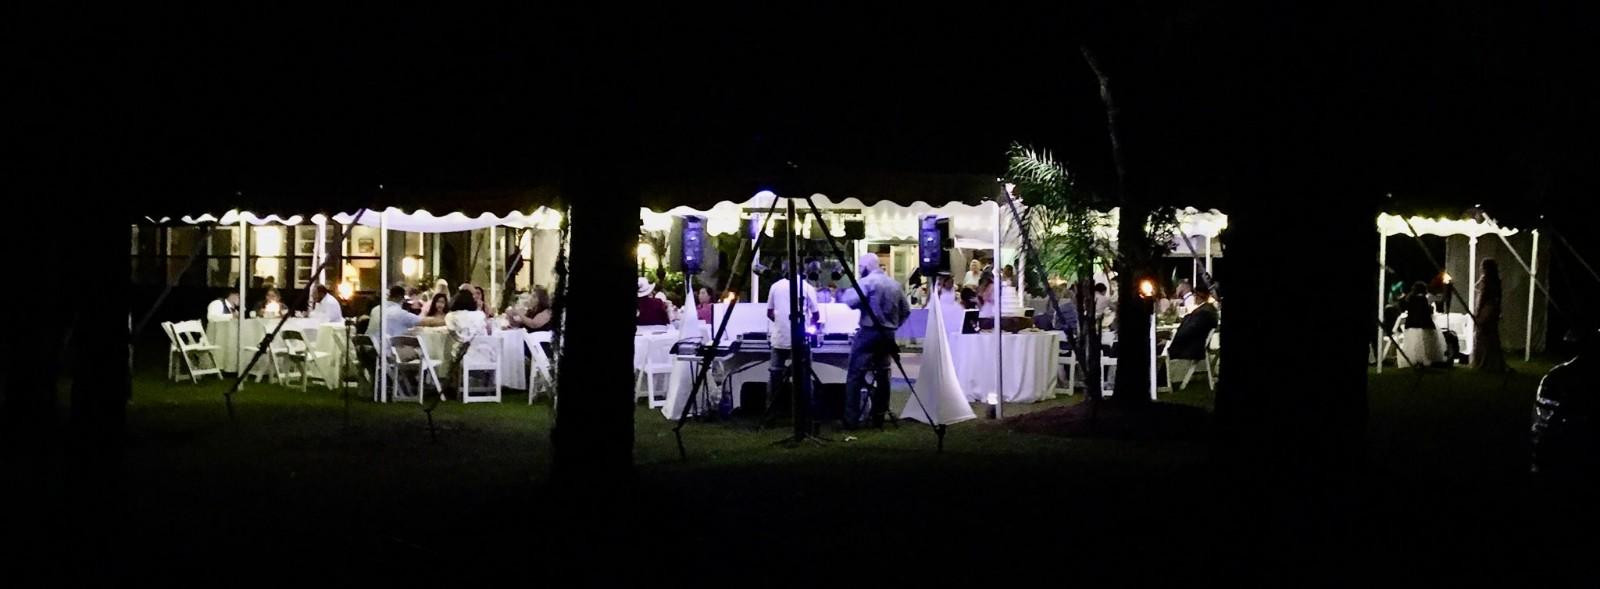 Weddings and Corperate Events